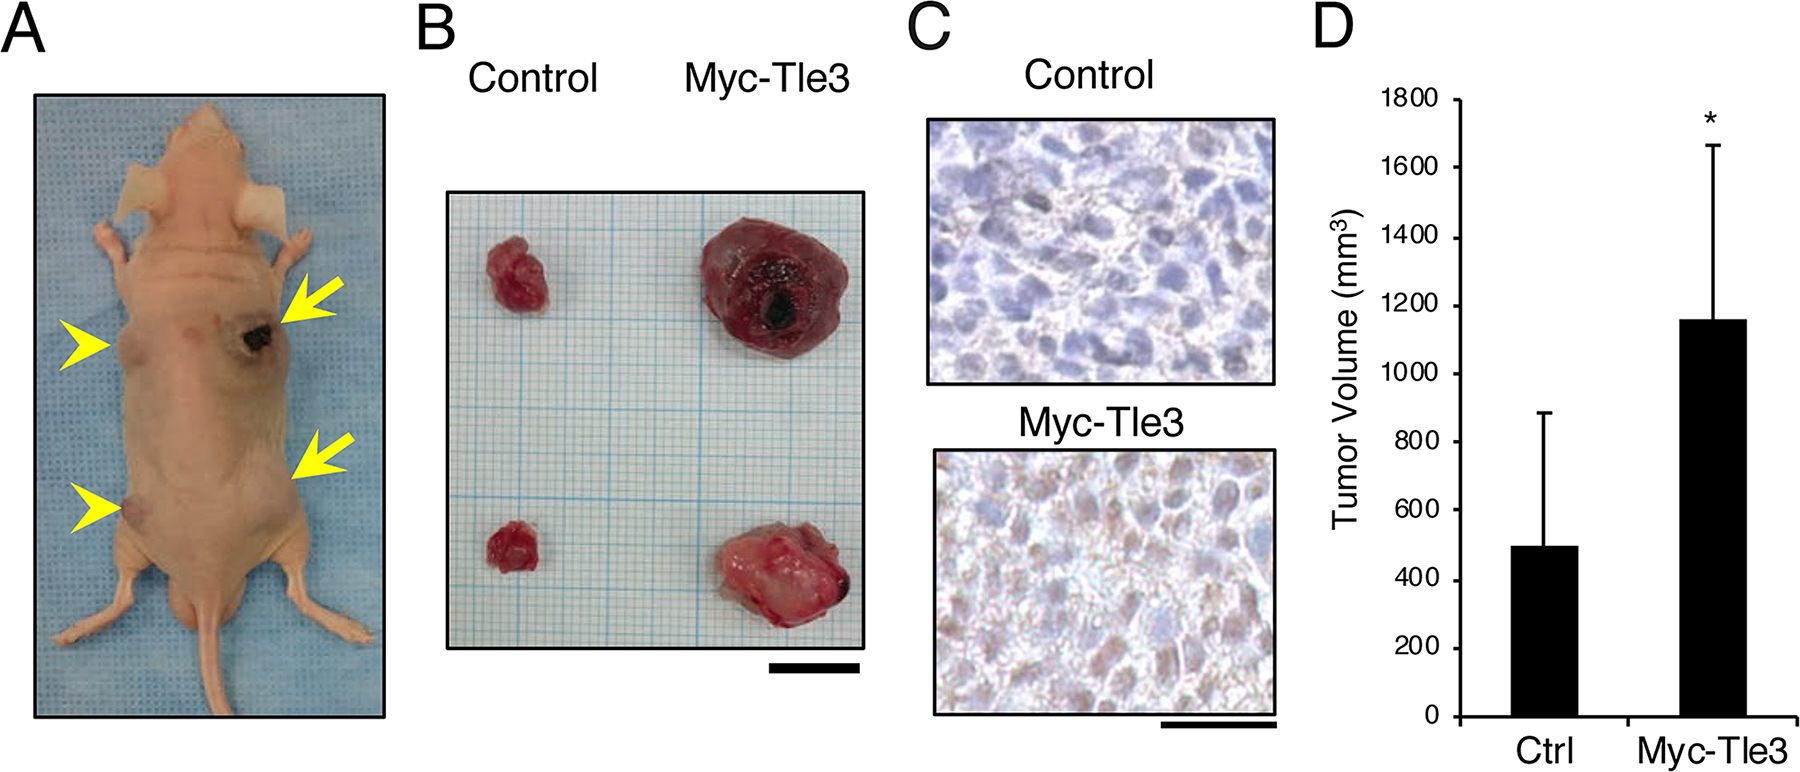 Overexpression of Myc-Tle3 in subcutaneously injected B16 melanoma cells increases tumor size in vivo.